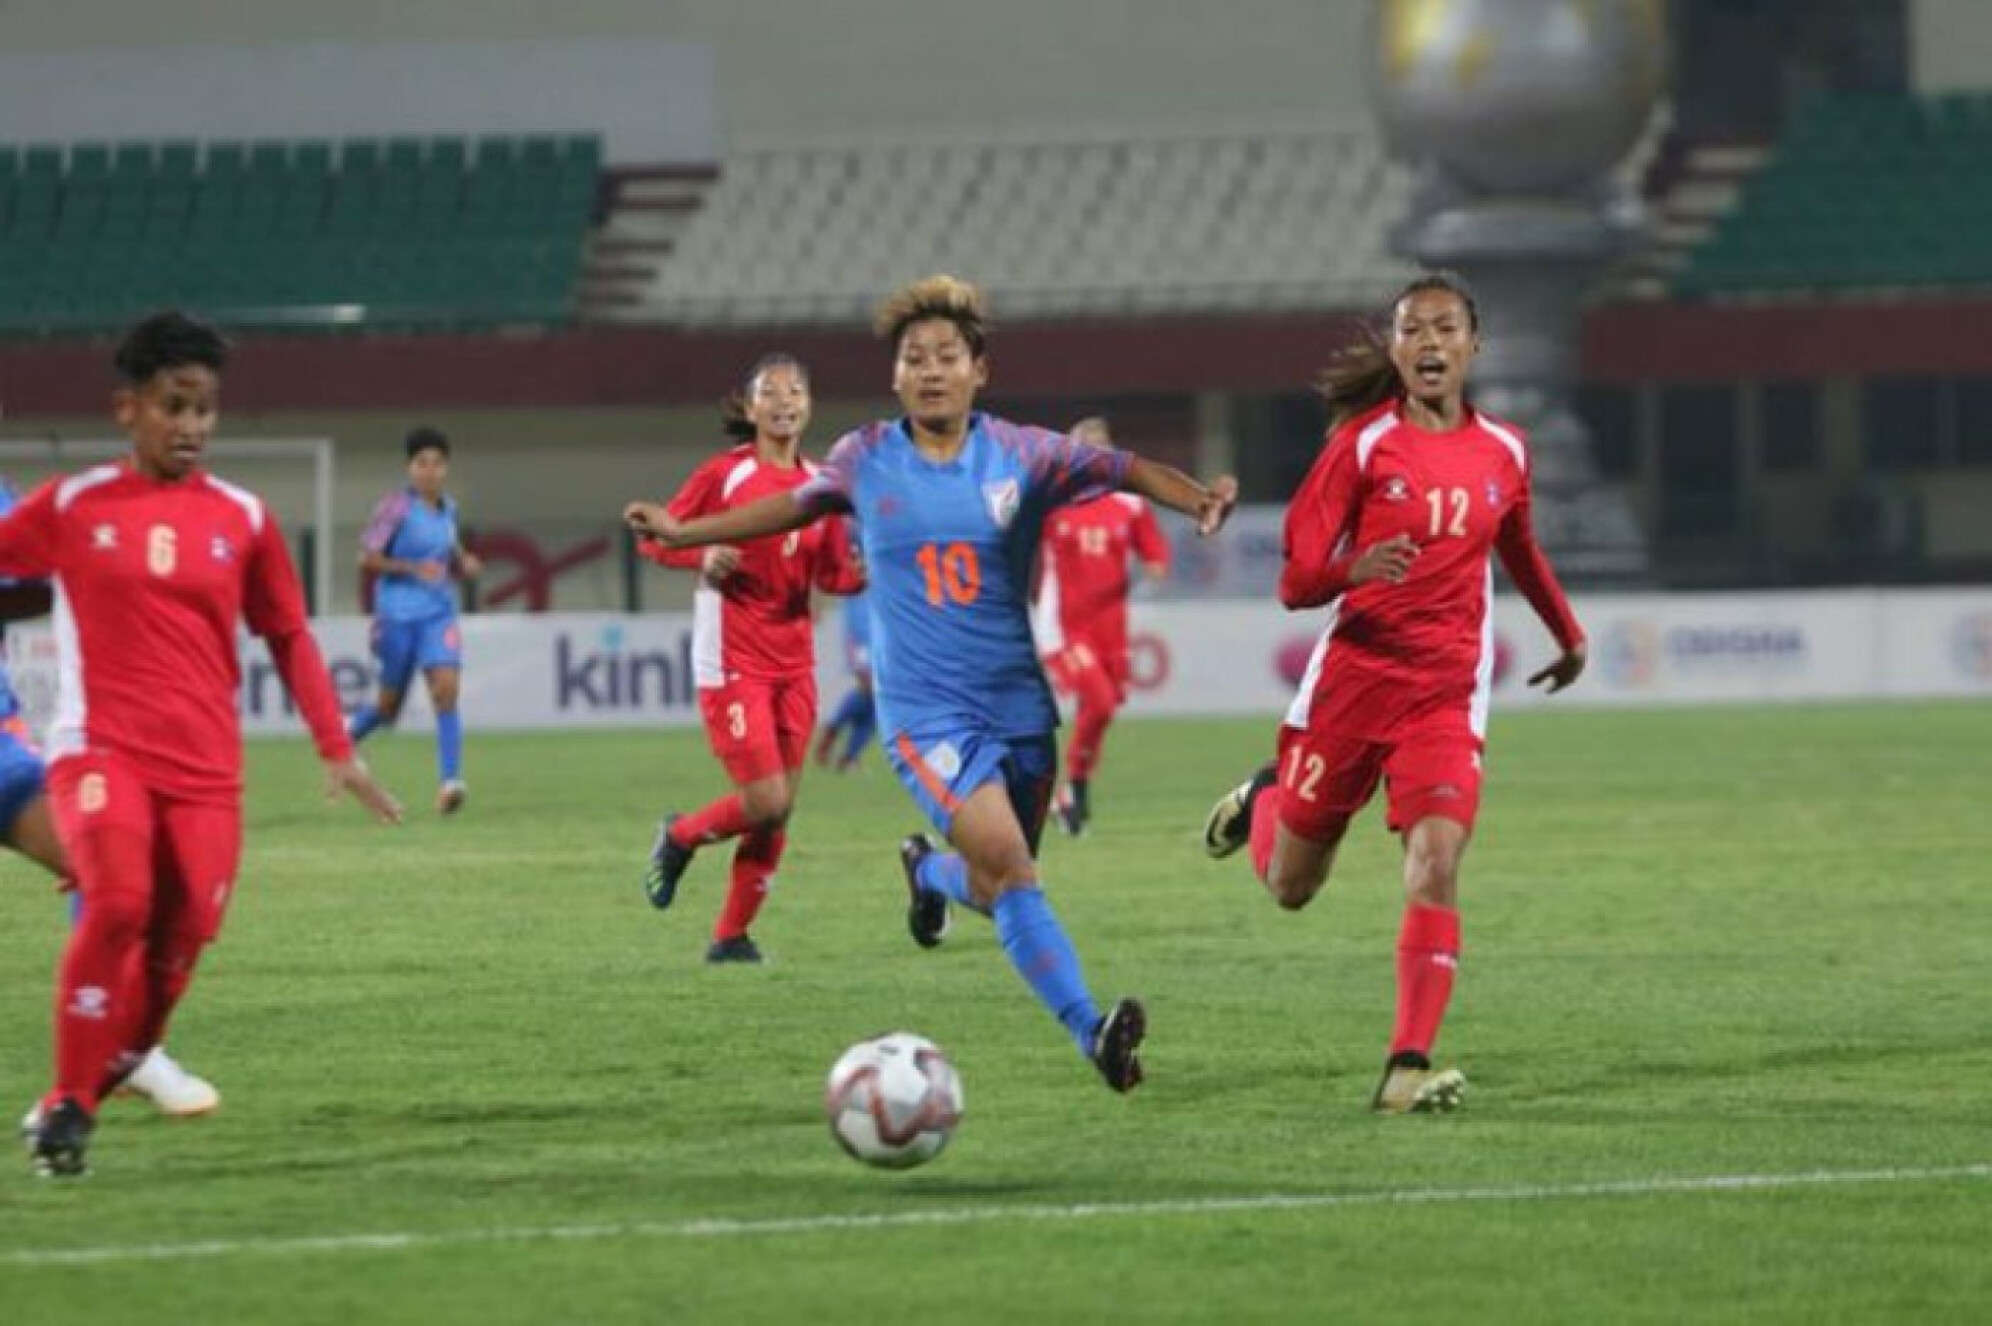 Hero Gold Cup 2019: Nepal women's football team defeat India 2-1